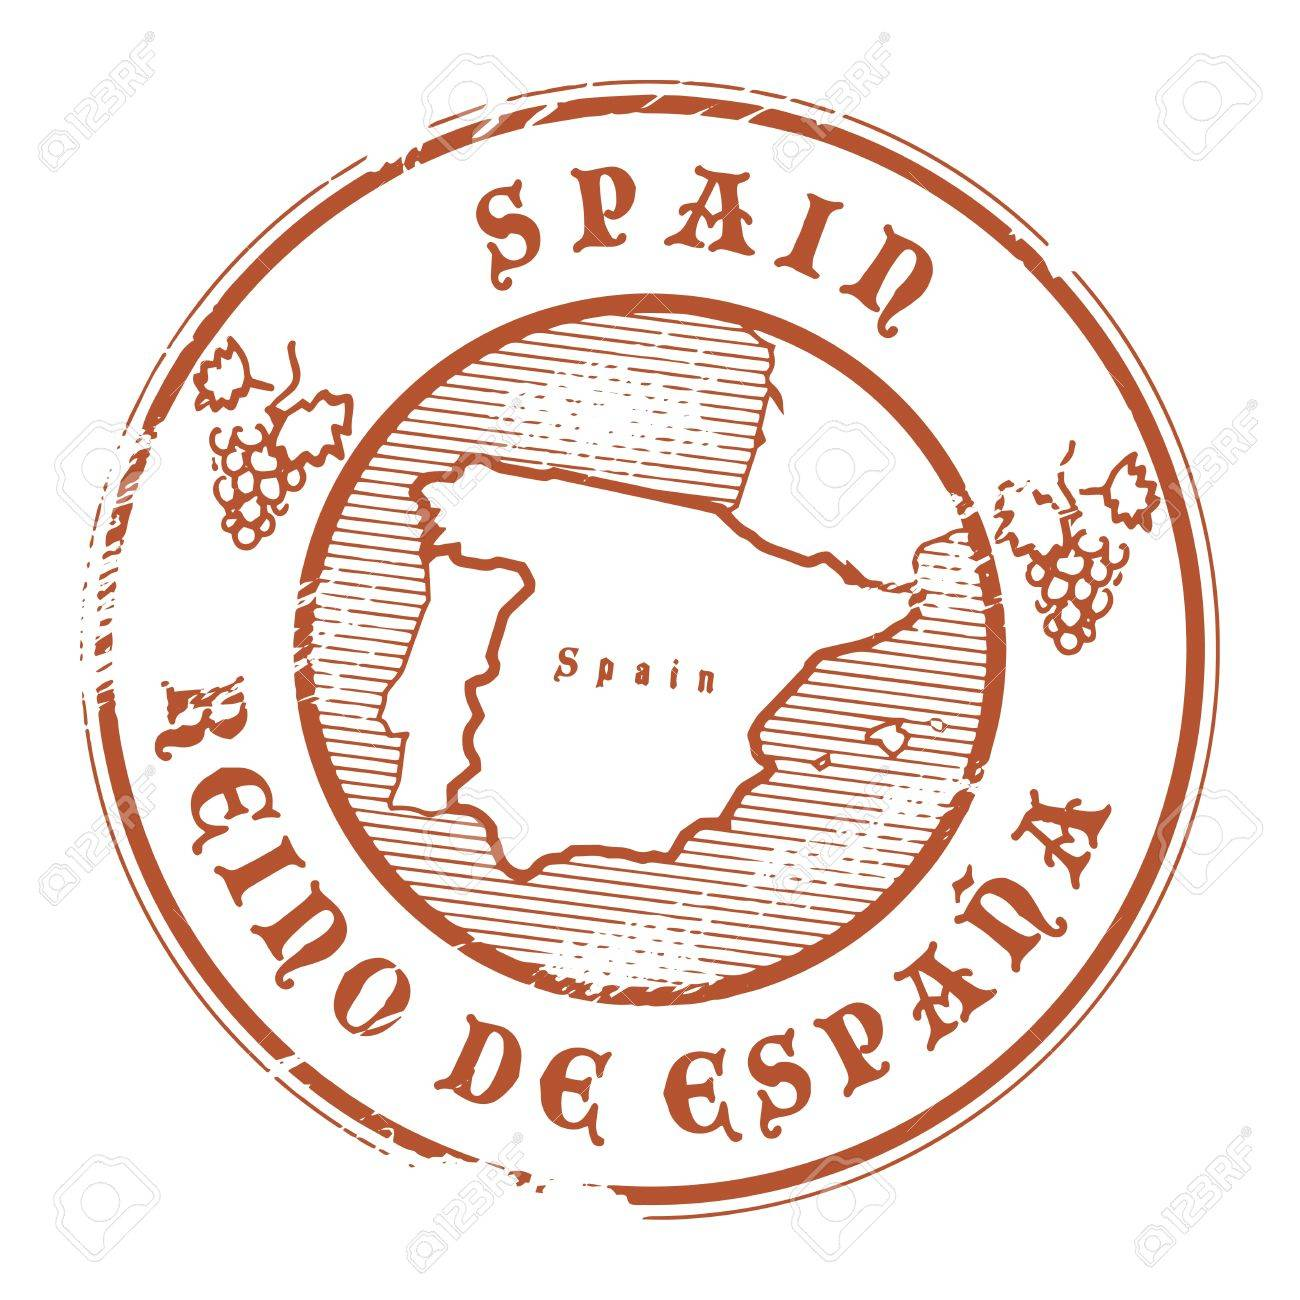 Grunge rubber stamp with the name and map of Spain Stock Vector - 15365088